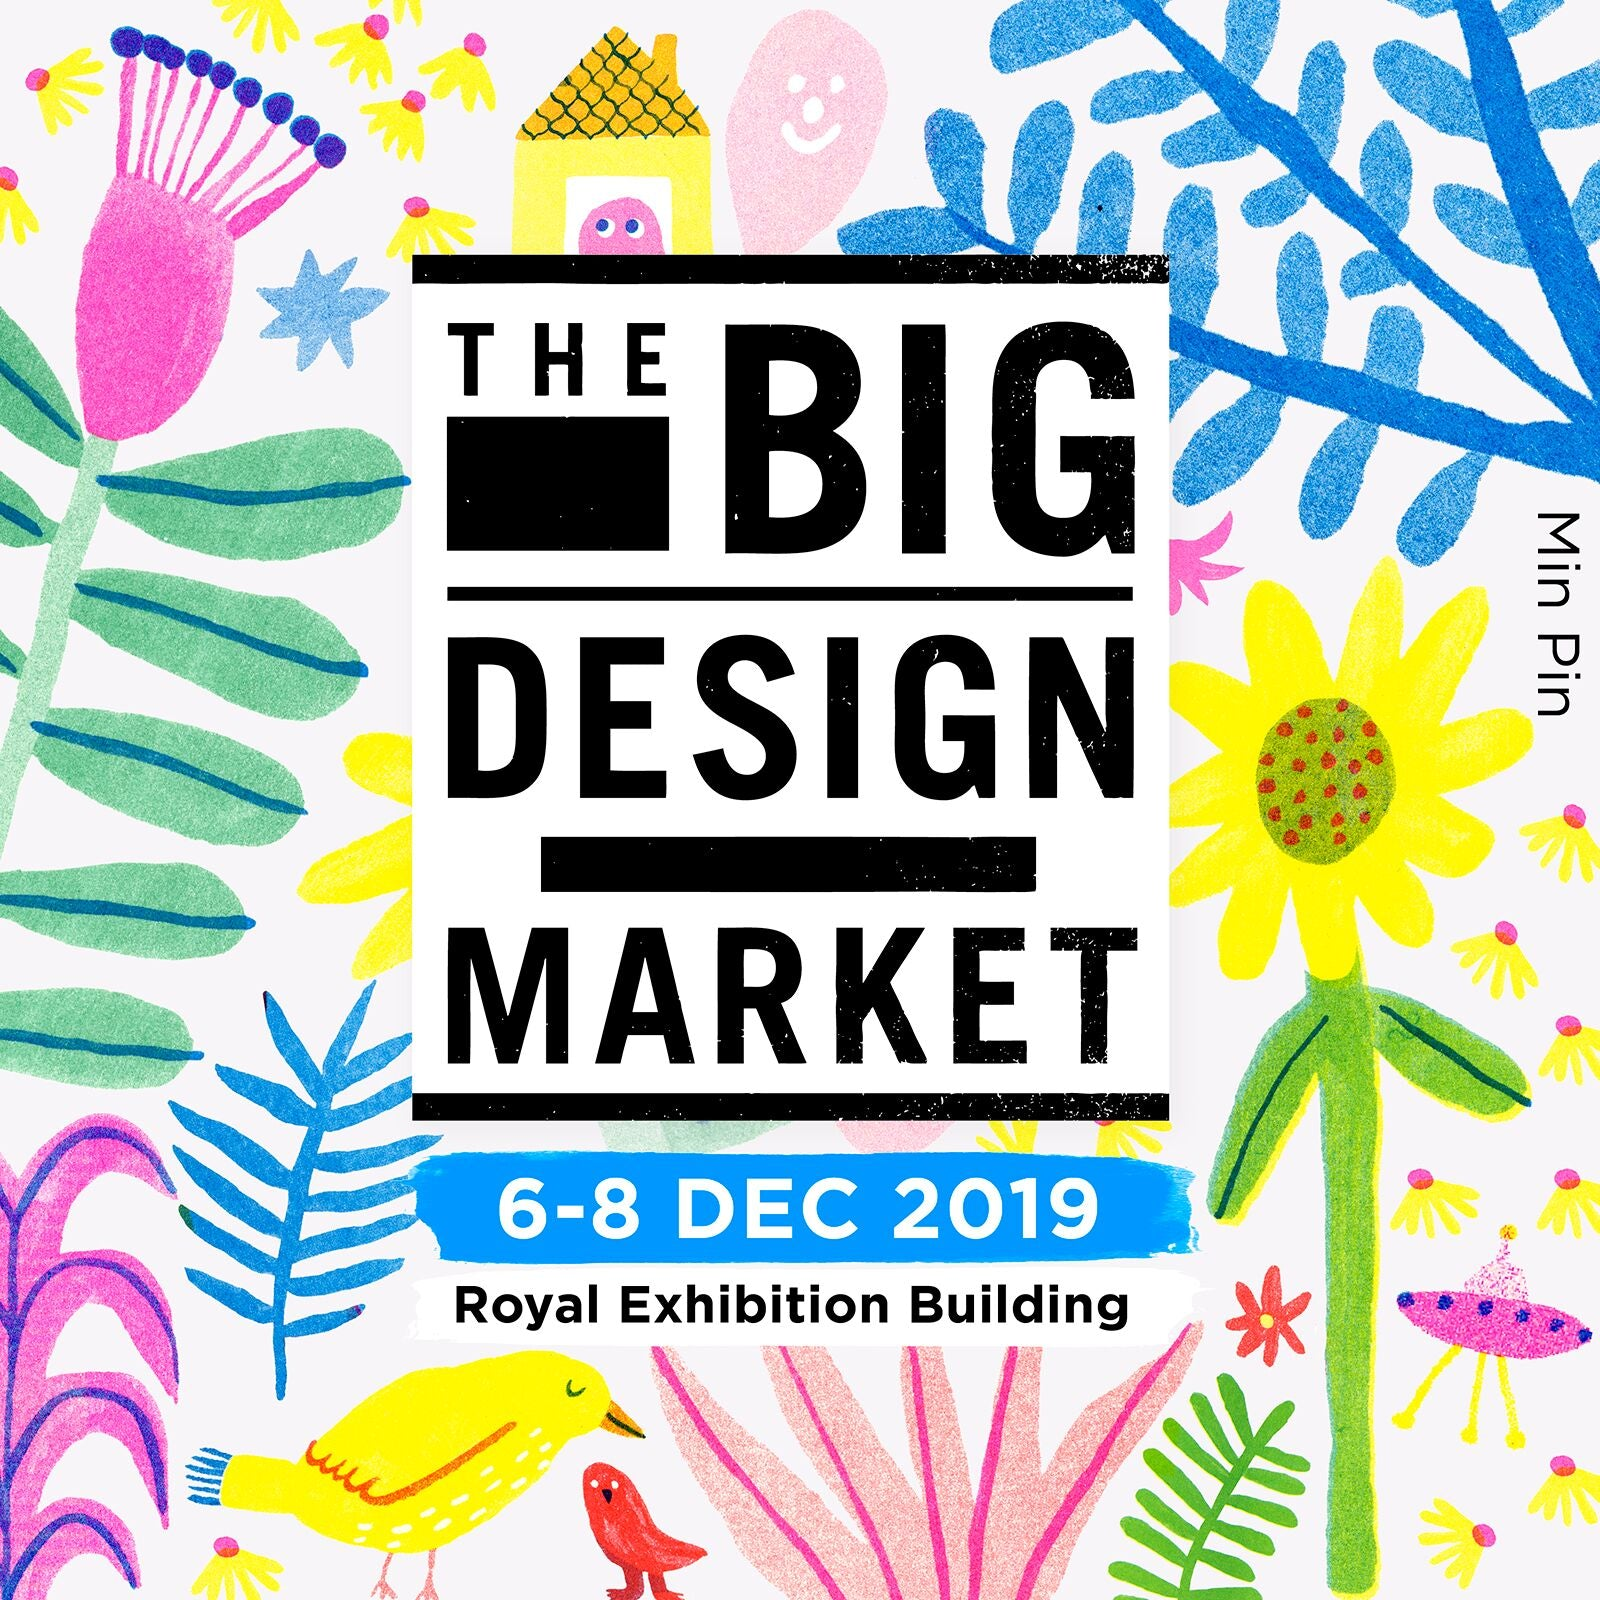 XMAS SHOP THE BEST IN DESIGN @ MELBOURNE POP-UP DEC 6 - 8